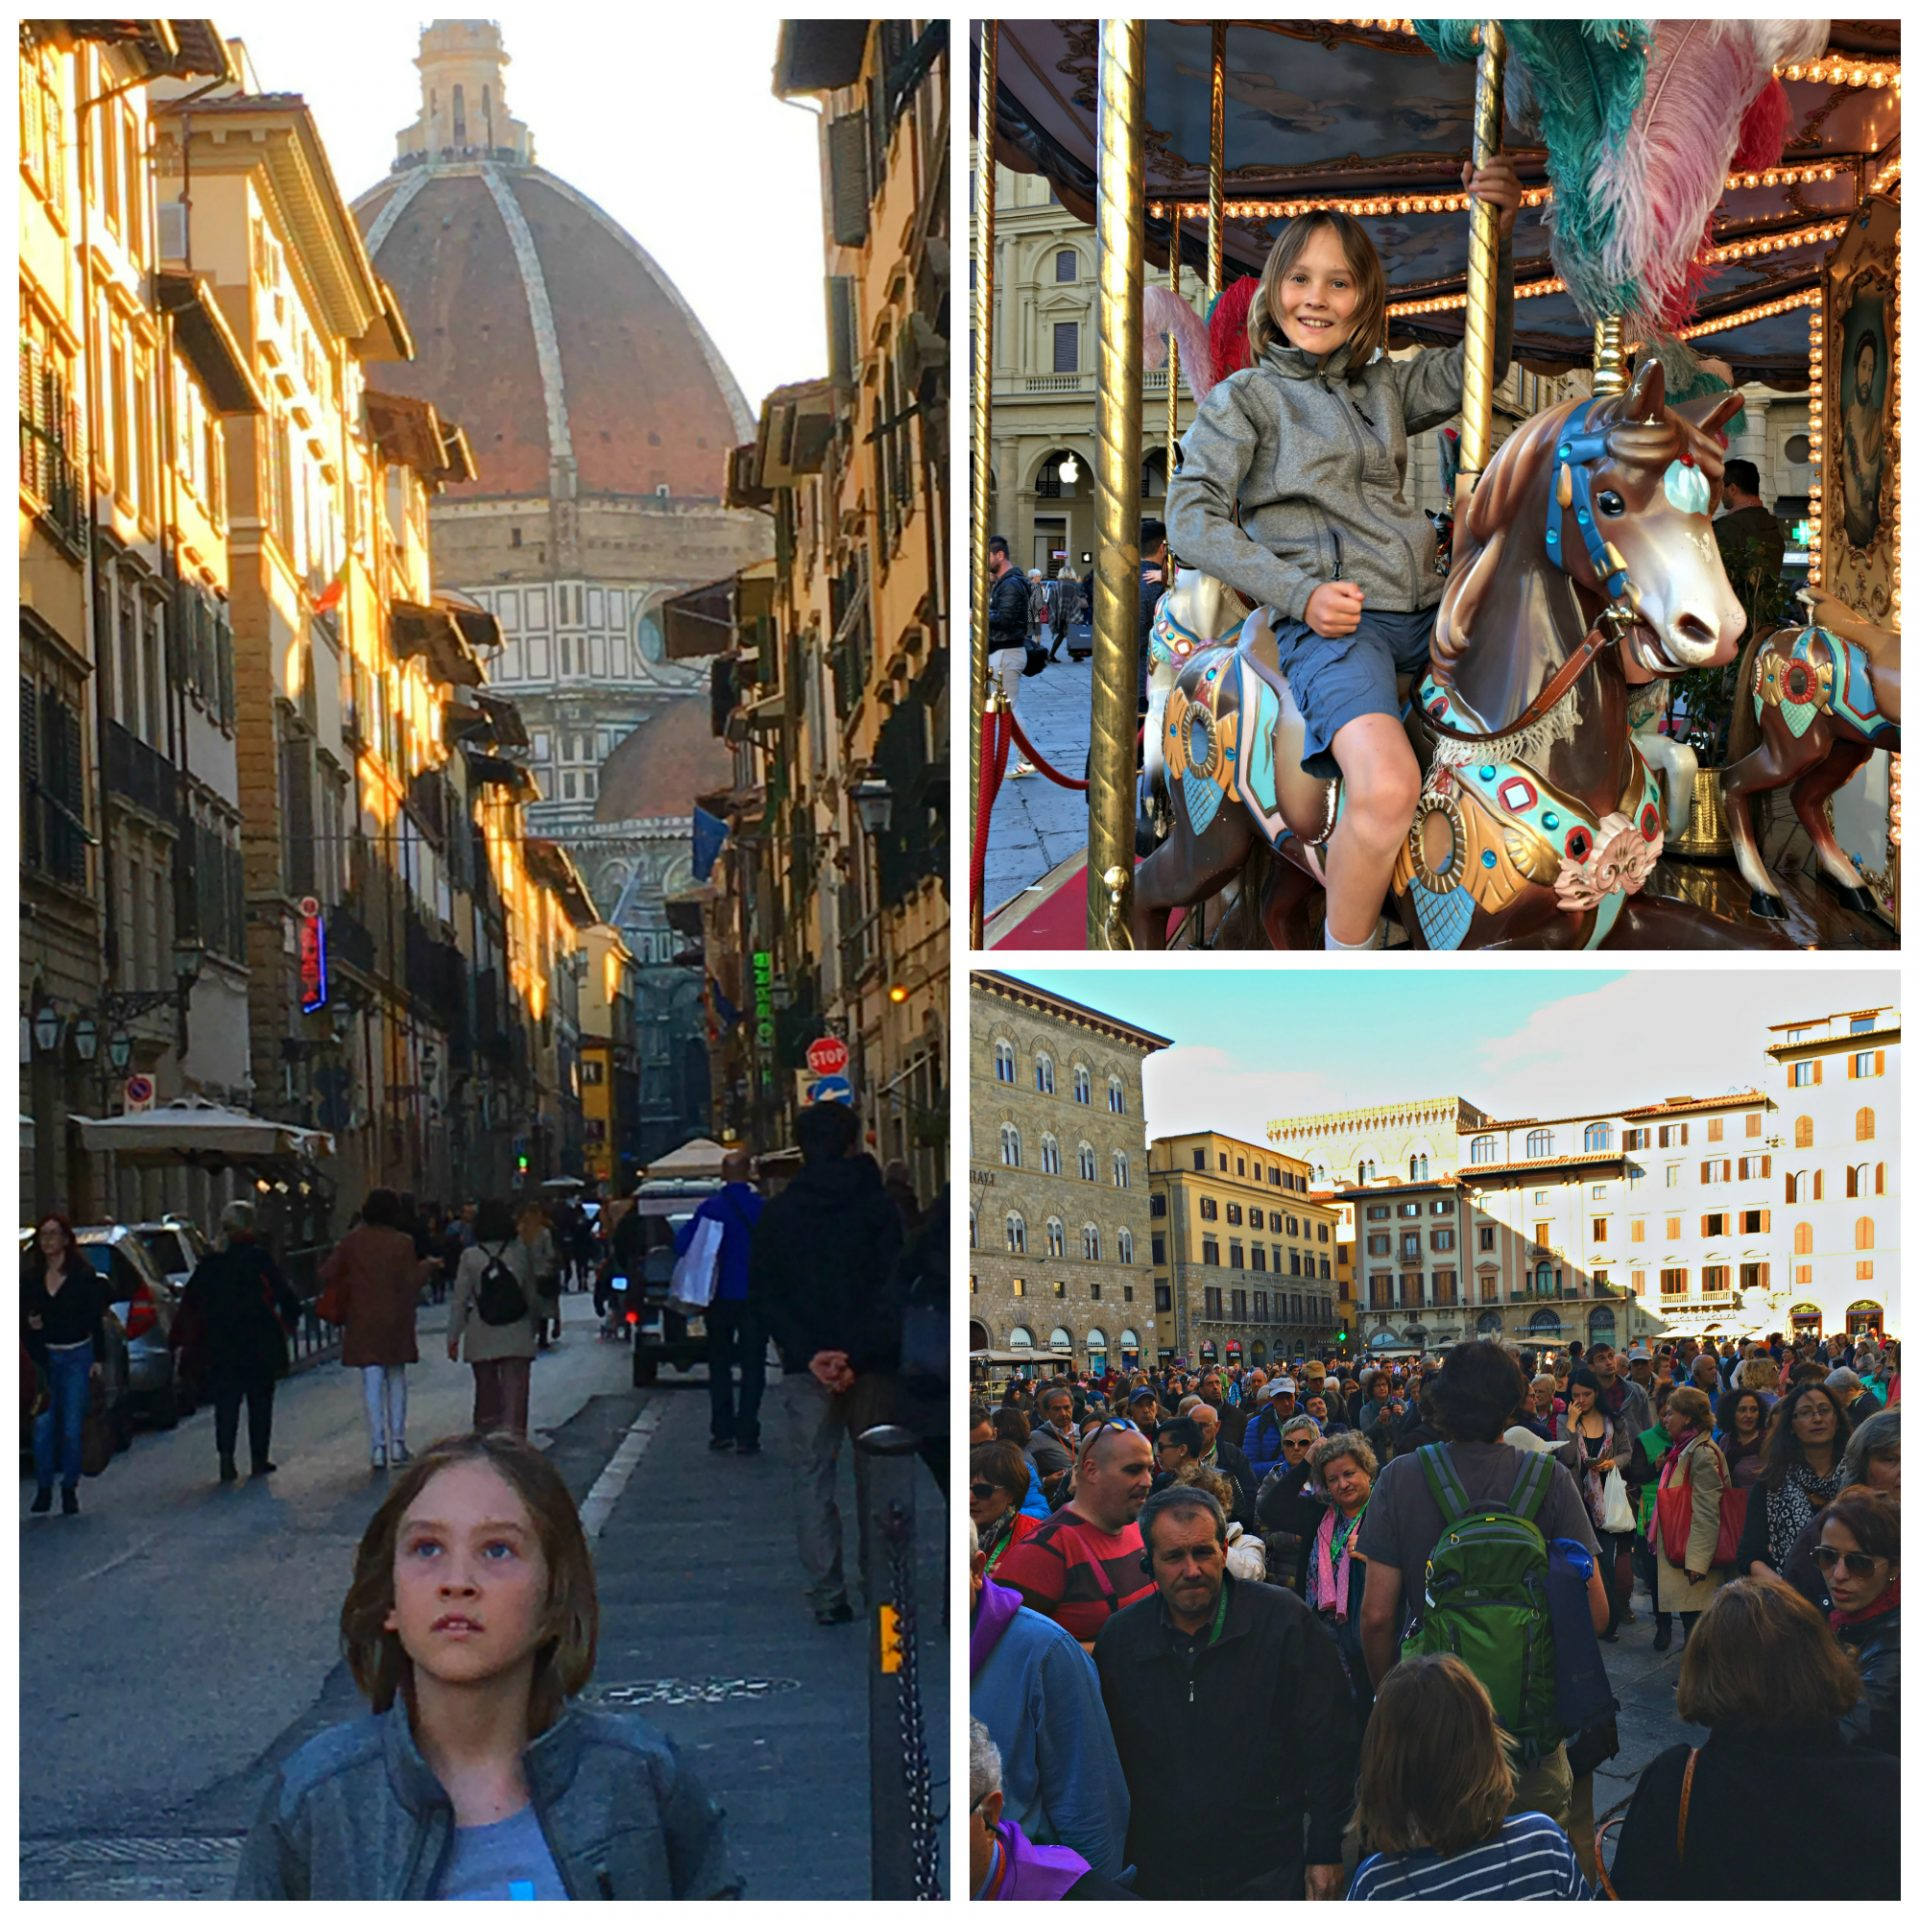 Florence, Italy (Firenze) streets, crowds, carousel